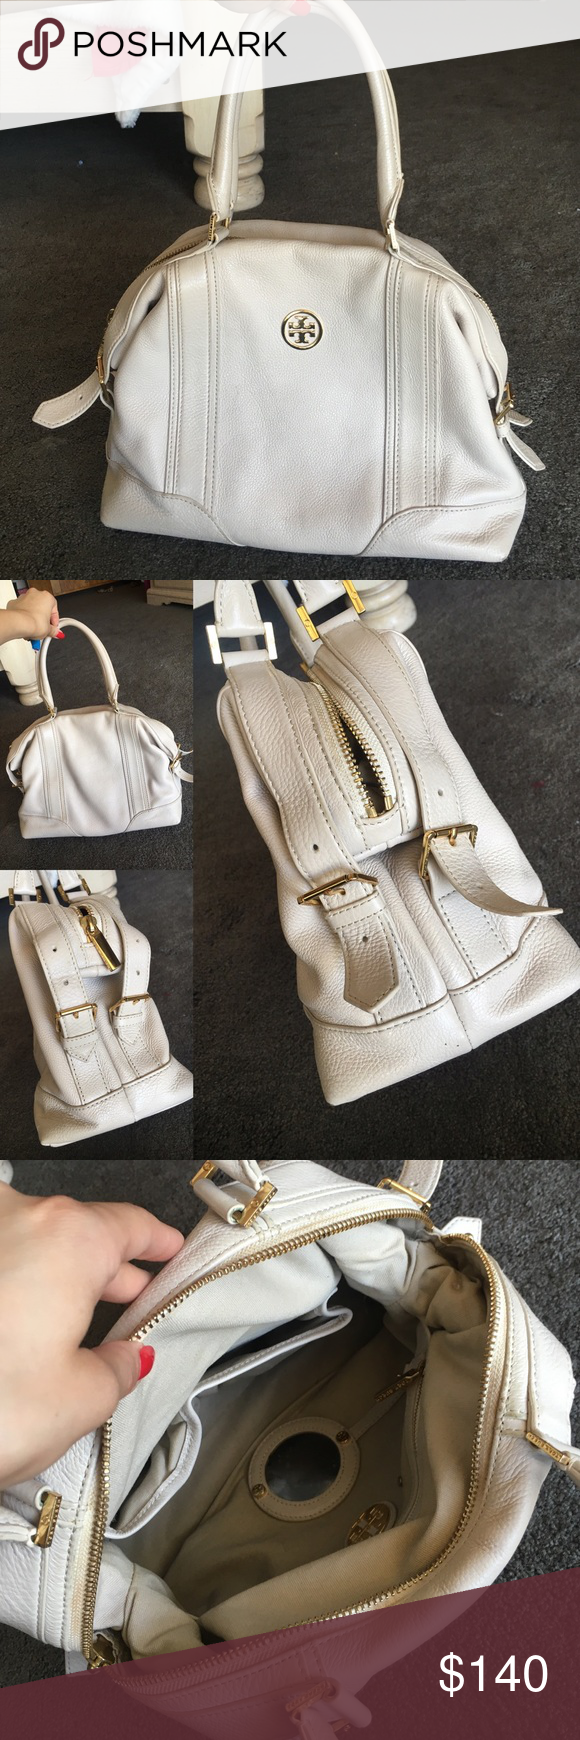 Tory Burch ivory cream handbag In great condition. No stains. Mirror inside with protective sticker still on. Second pic shoes the side buckes you can adjust for a different look. Each side has 2 buckles and one side has a small leather piece missing, not noticeable look at second pic. Tory Burch Bags Satchels